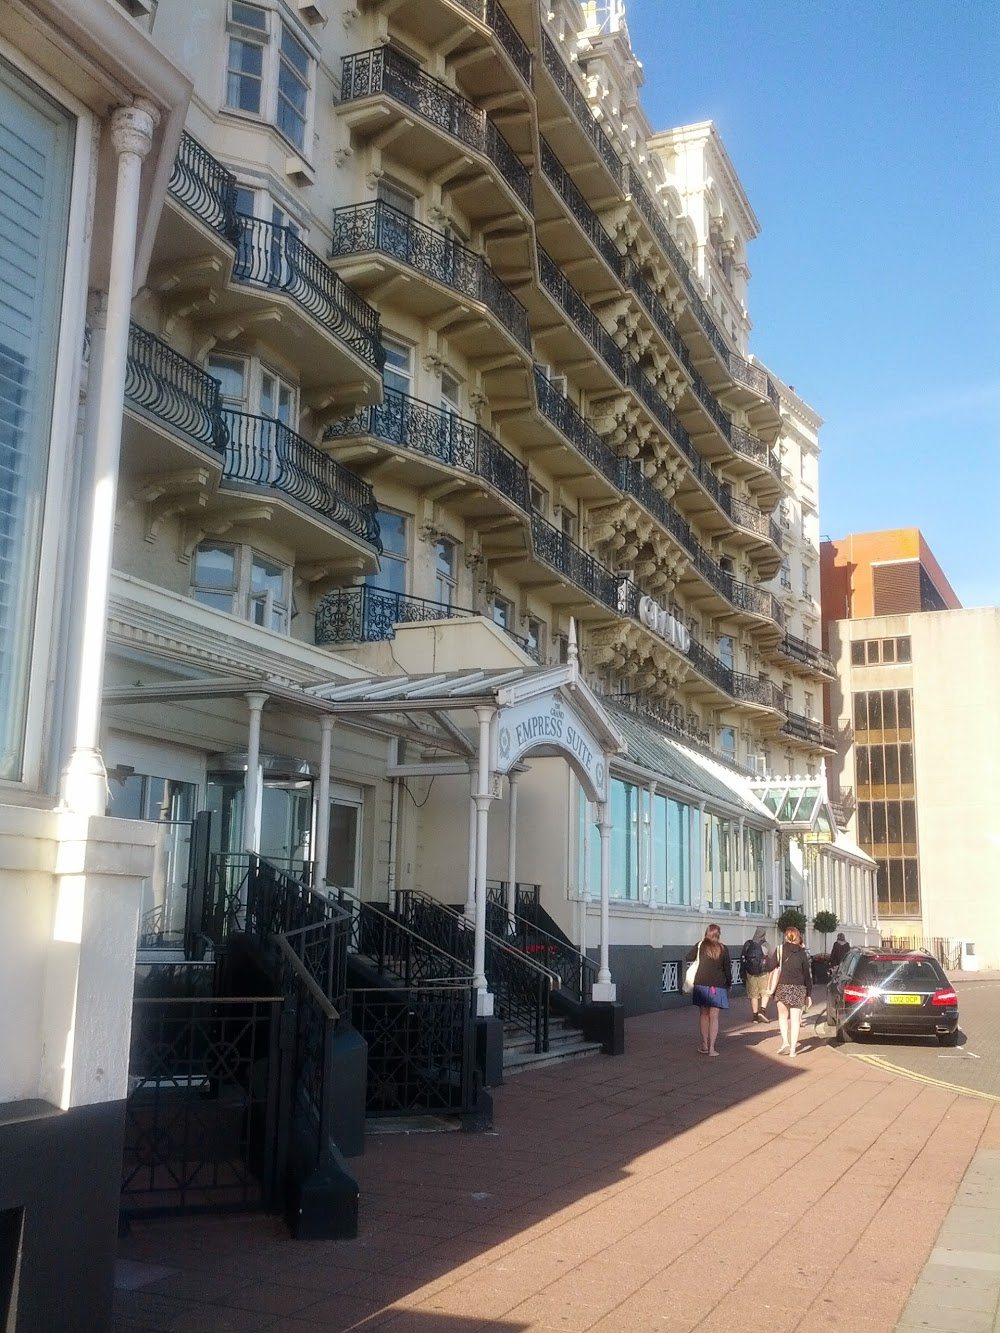 Reasons to stay in Brighton - The Grand Brighton